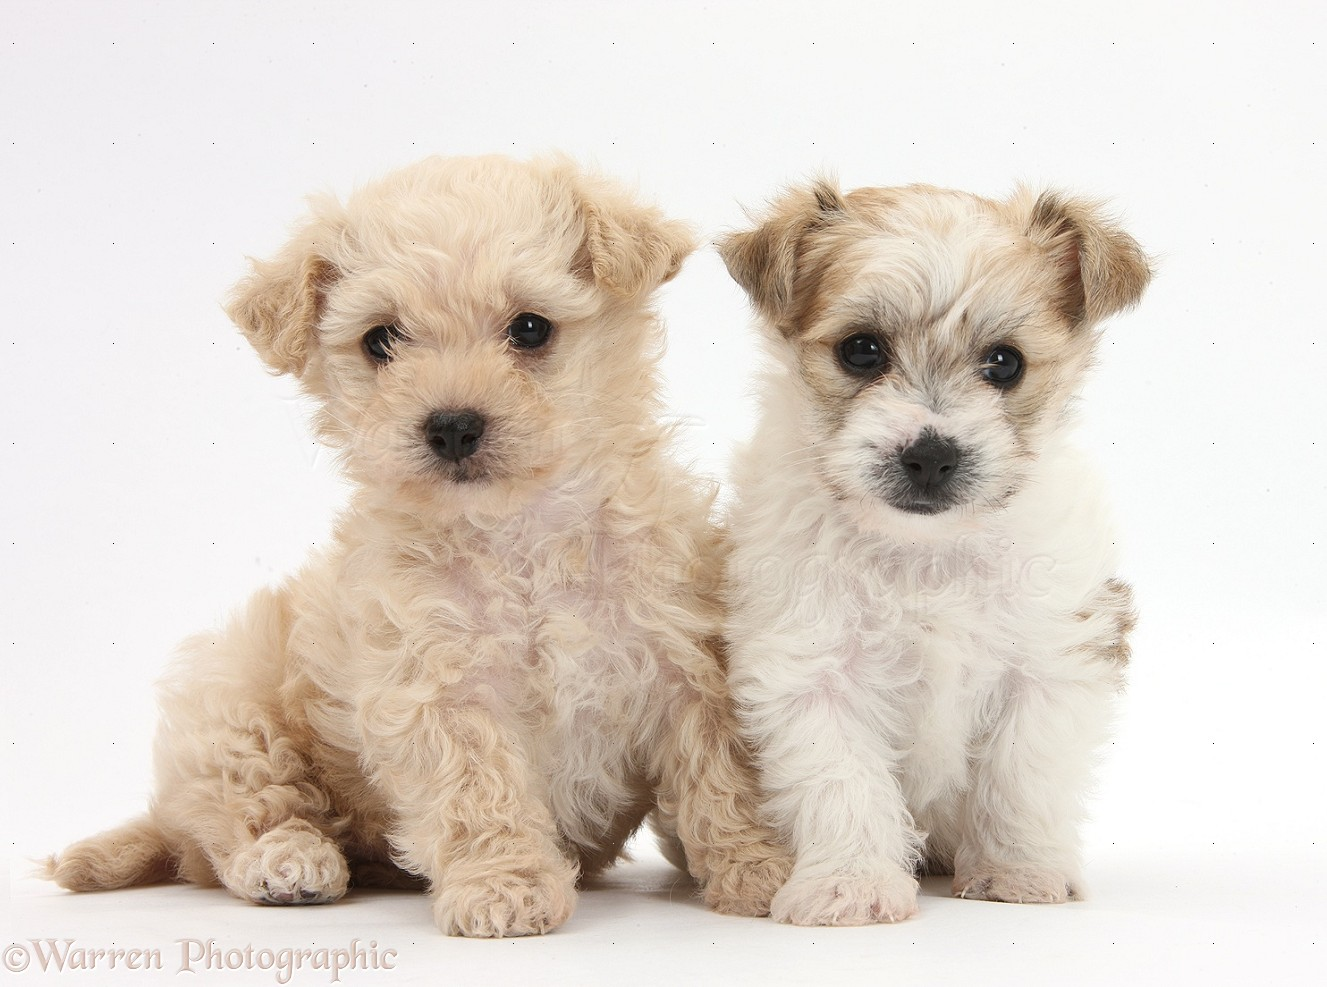 Dogs: Two cute Bichon x Yorkie pups photo - WP35554